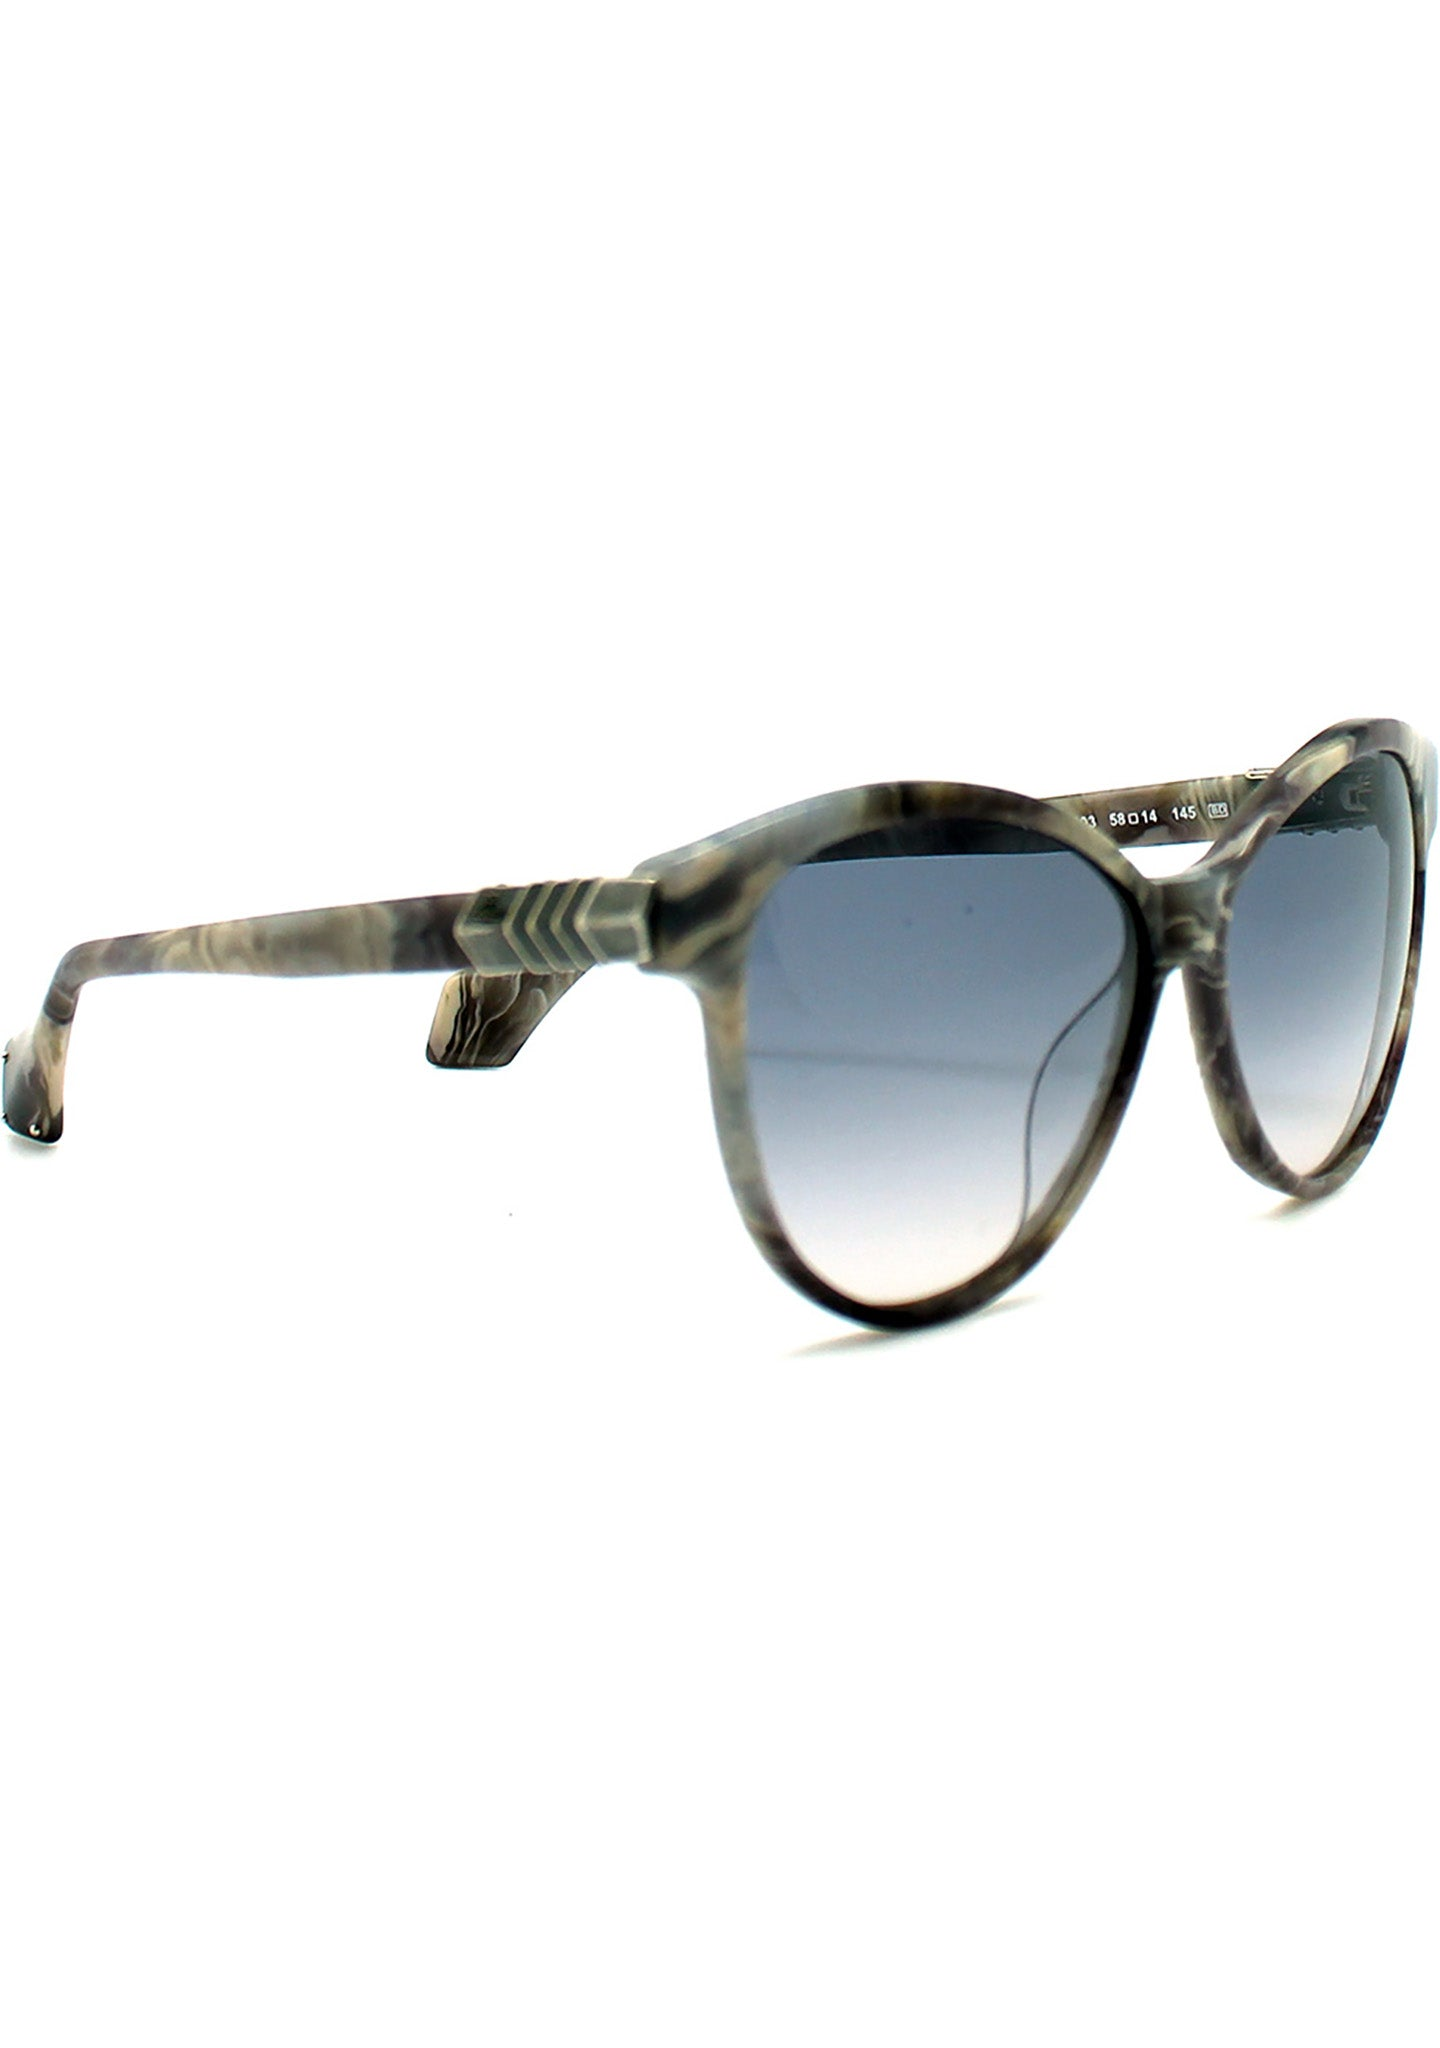 Vivienne Westwood Armour Cat Eye Sunglasses in Marble